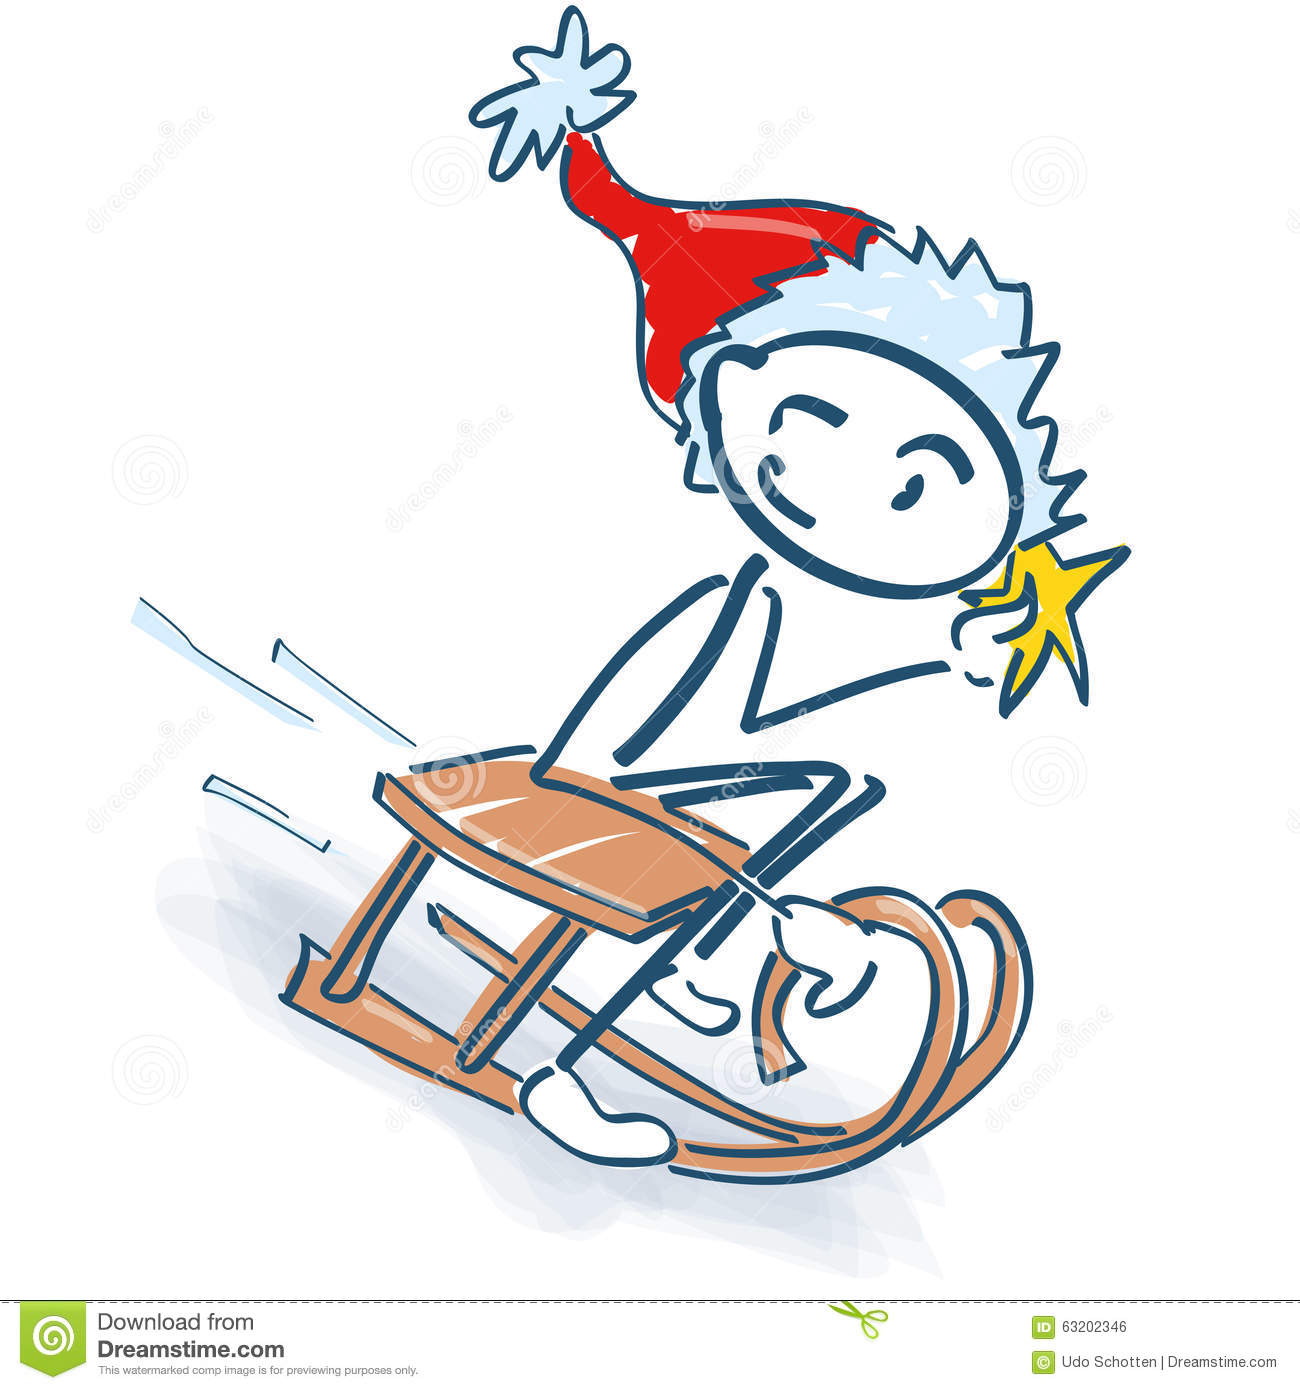 Stick Figure As Santa Claus With Sleigh Stock Vector.